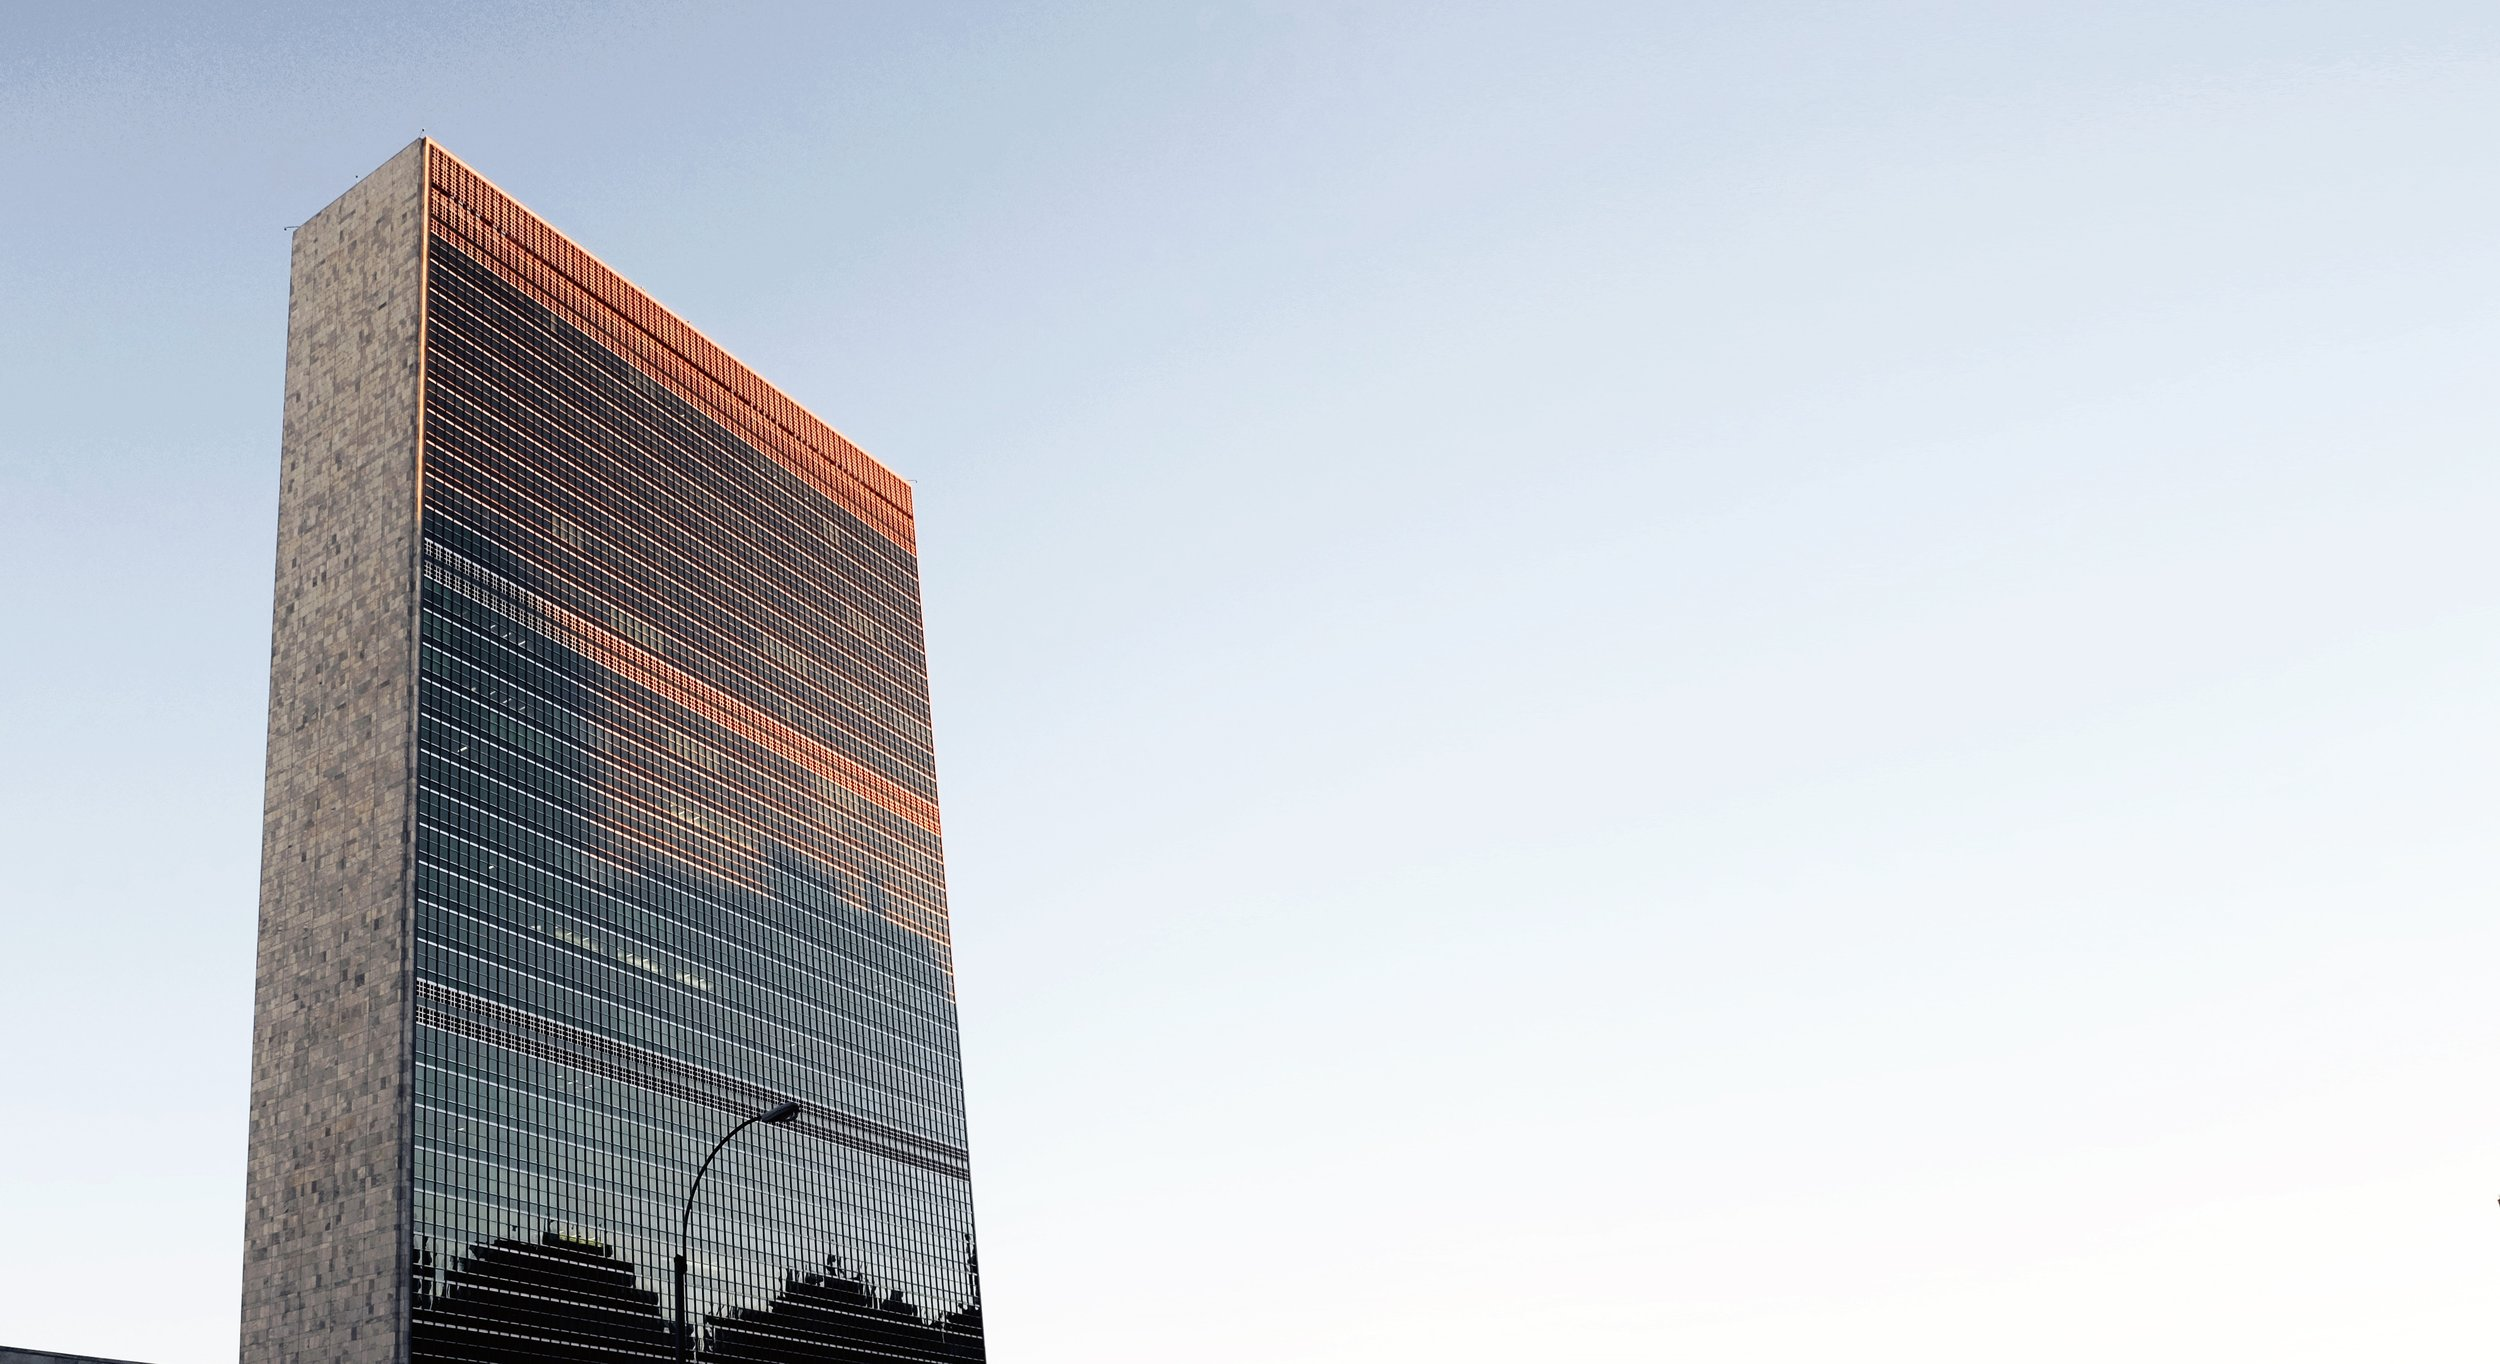 In 2007, CLF was granted special consultative status with the Economic and Social Council of the United Nations. - The United Nations' Headquarters (pictured left) are located in New York City.